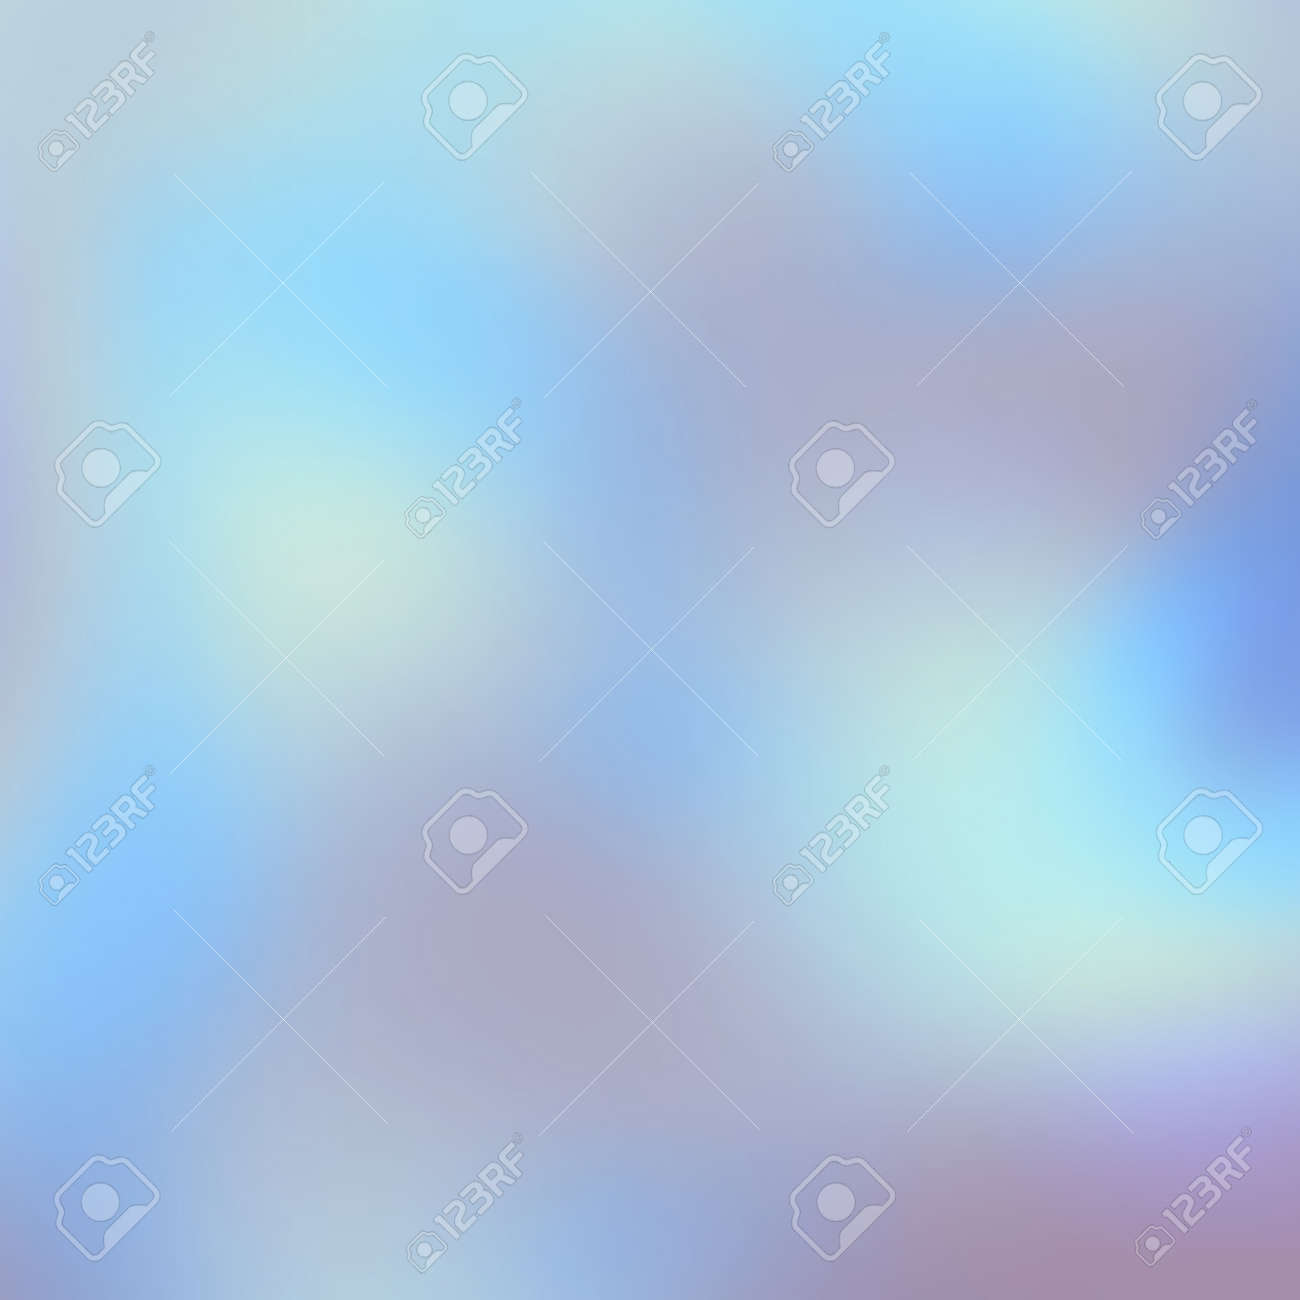 Defocused abstract background - 165852332